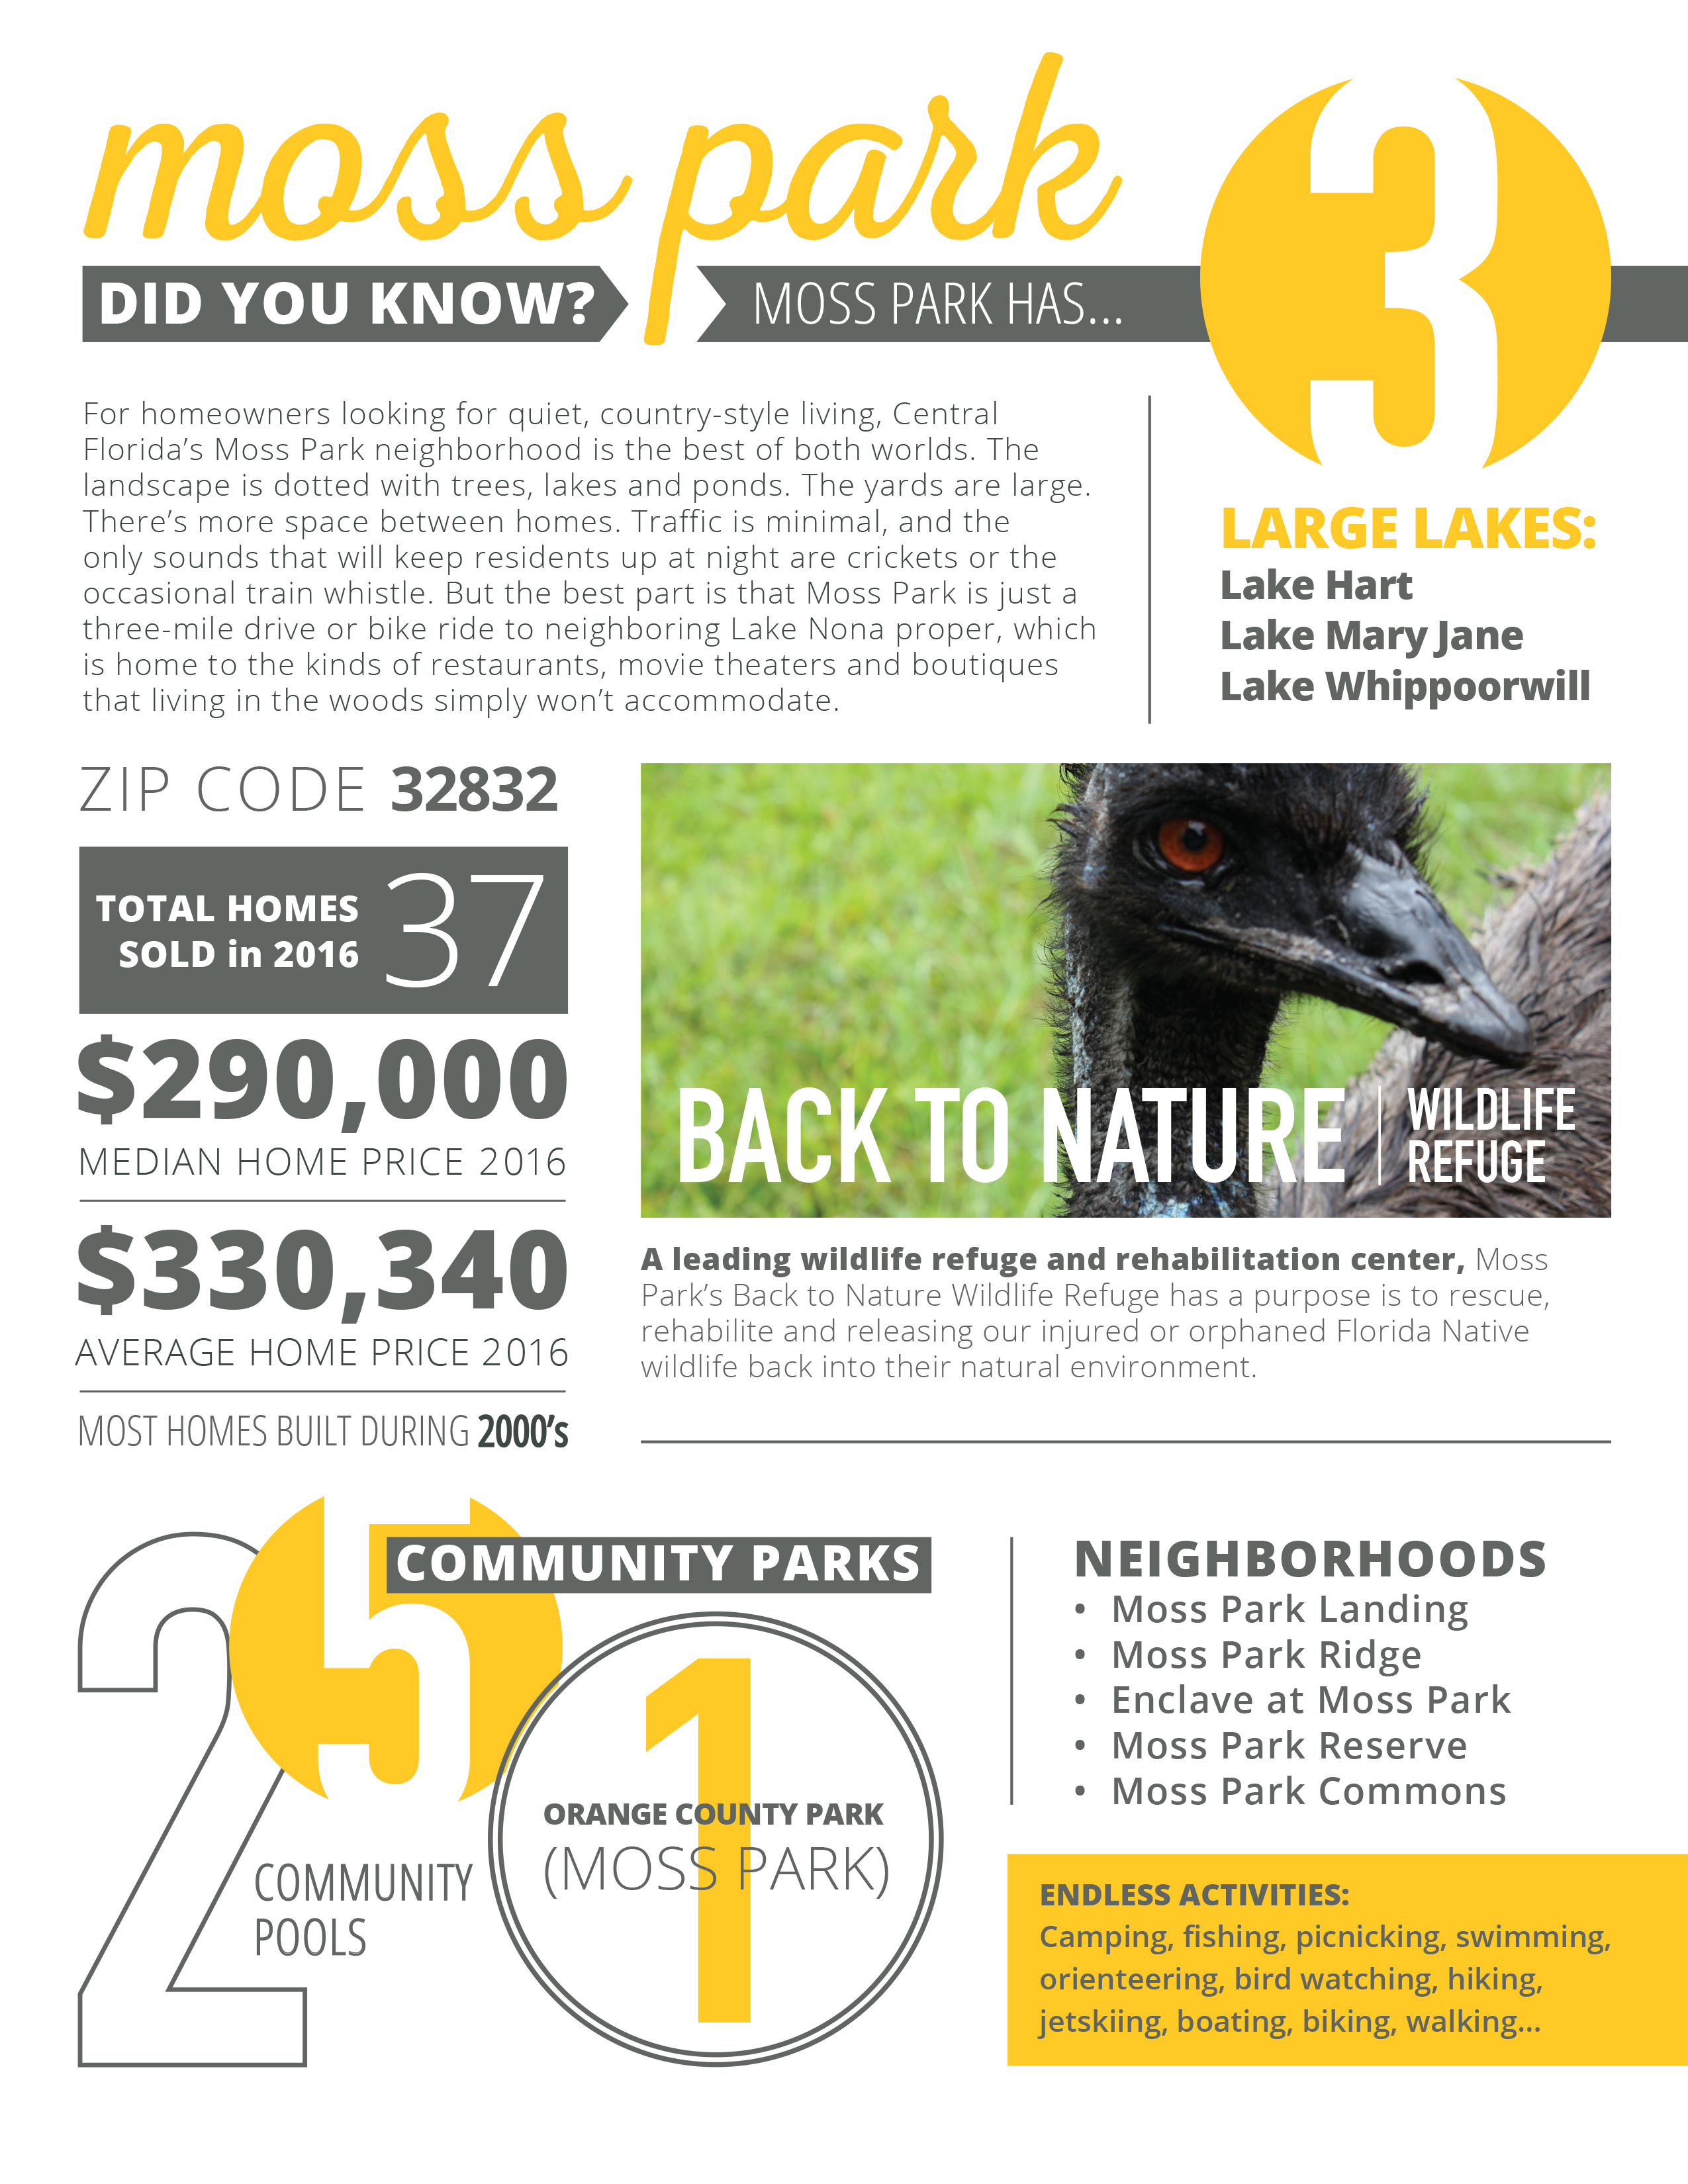 Infographic Moss Park Lake Nona